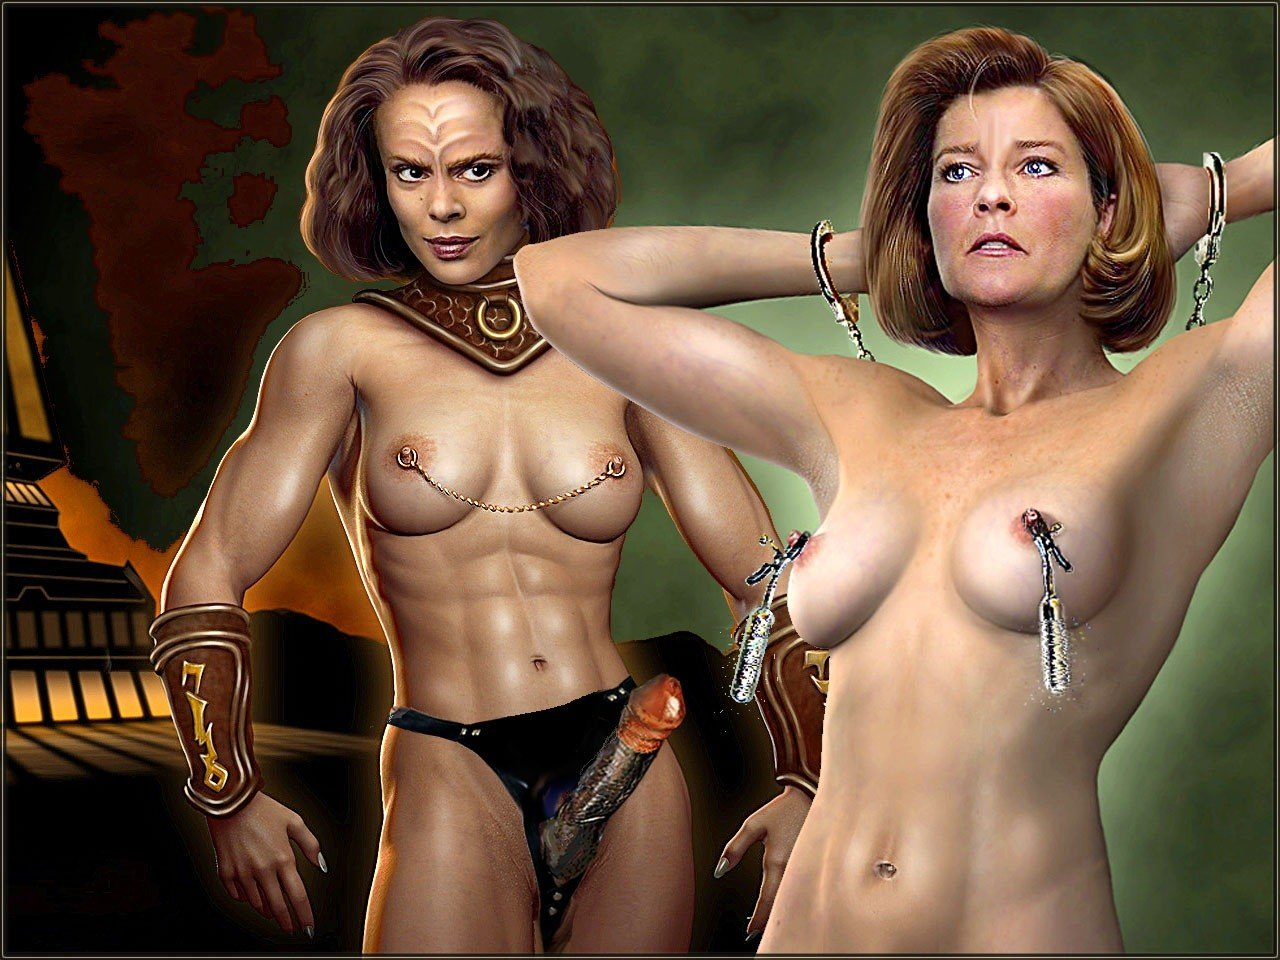 Kate mulgrew boob naked